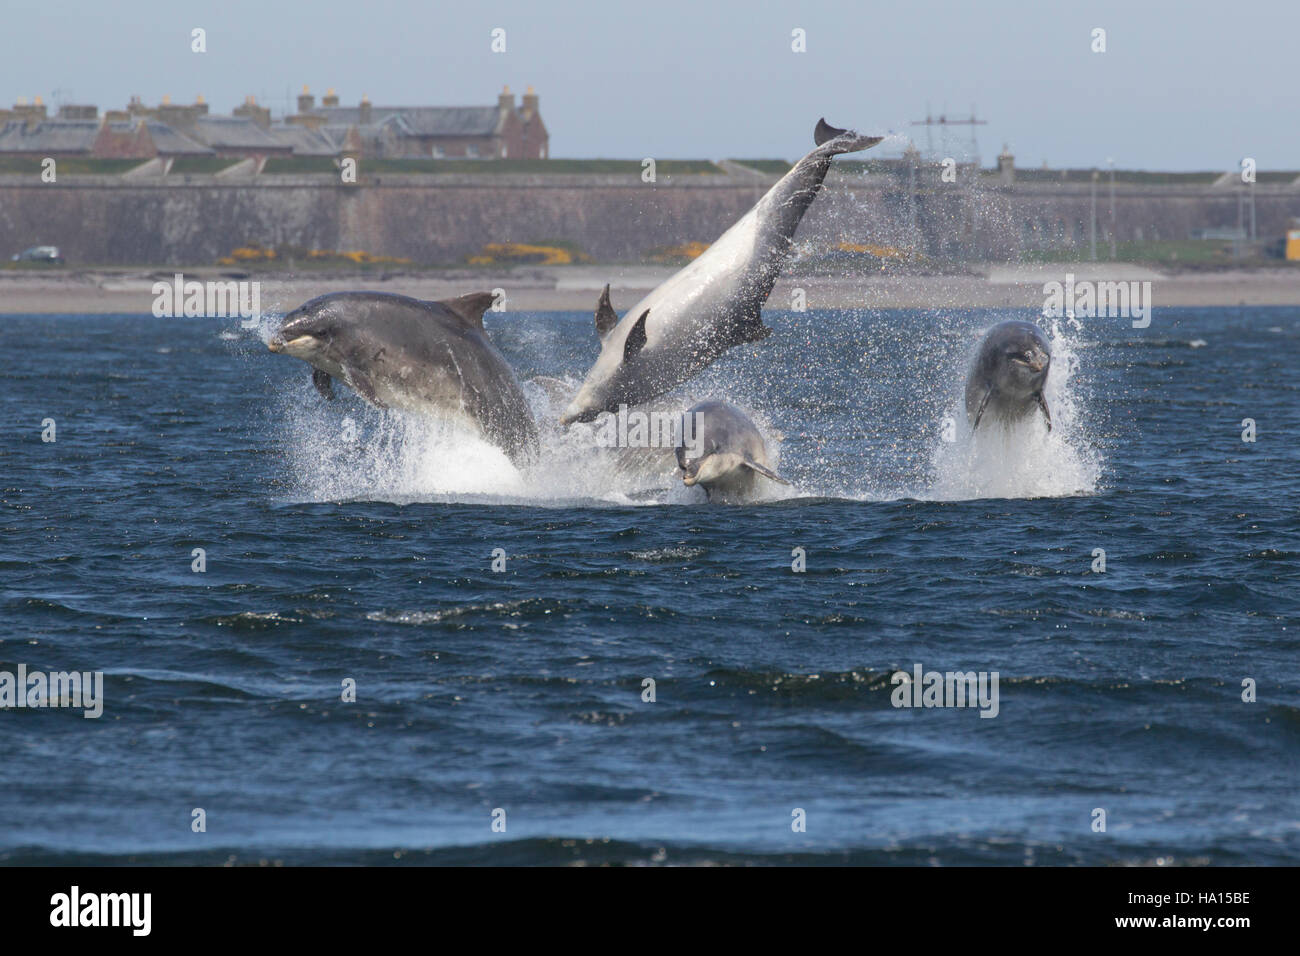 Bottlenose dolphins (Tursiops truncatus) breaching, jumping, leaping, Chanonry Point, Moray Firth, Scotland, UK - Stock Image